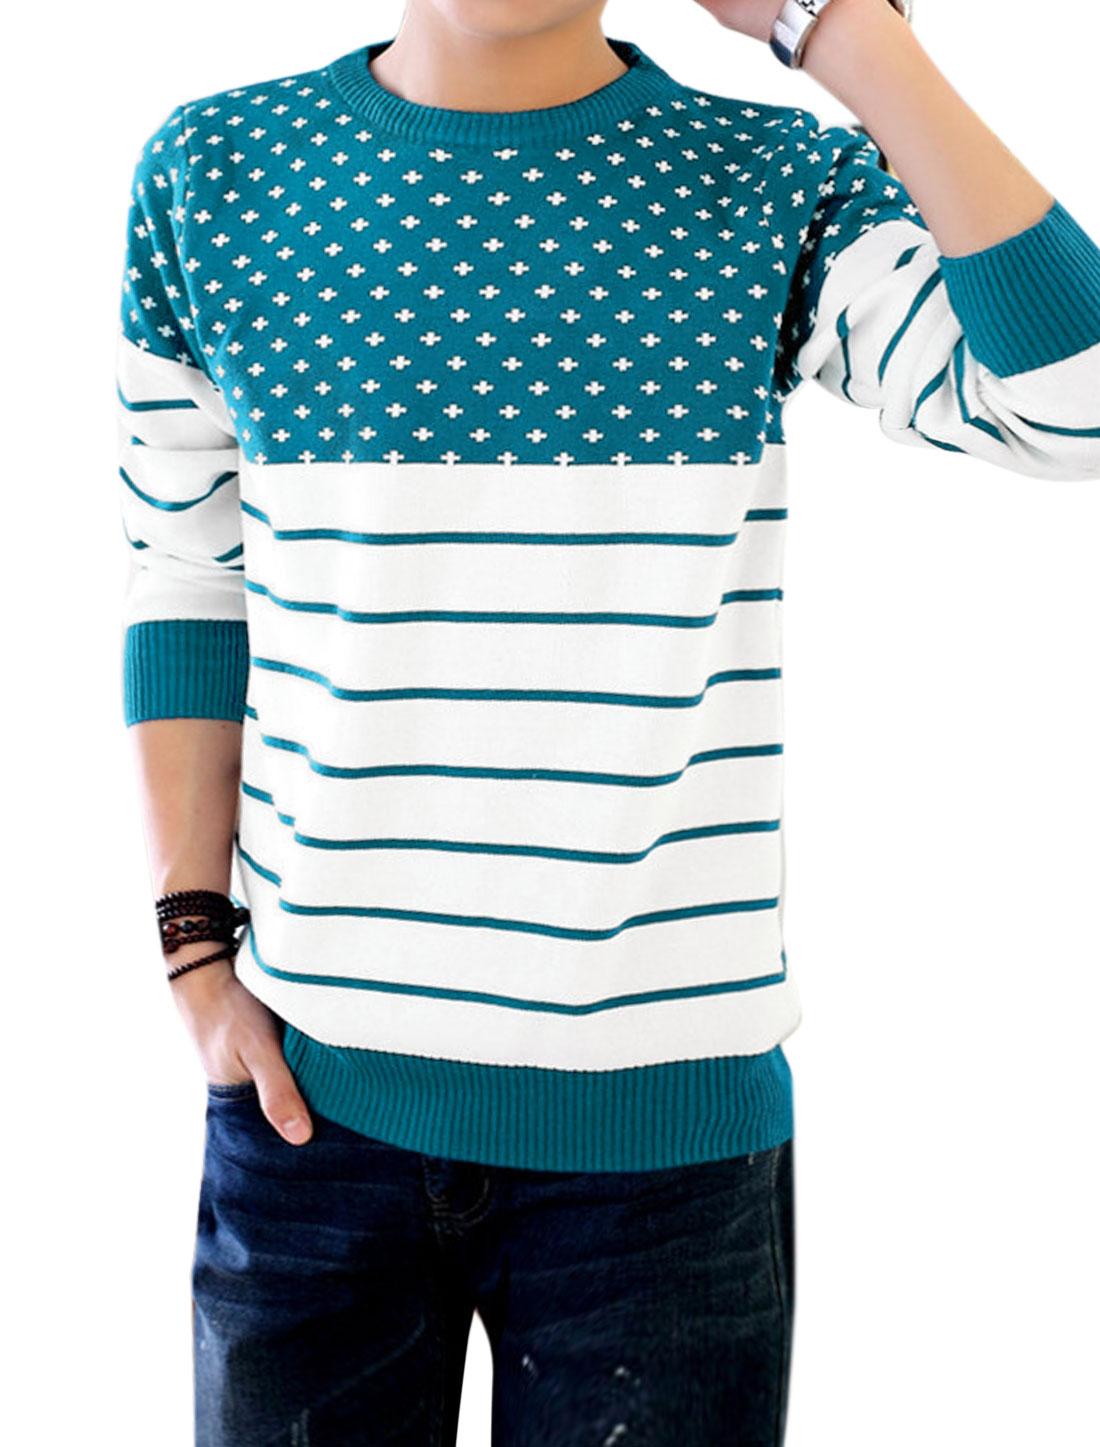 Men Crew Neck Contrast Color Stripes Cross Pattern Knit Shirt Blue M